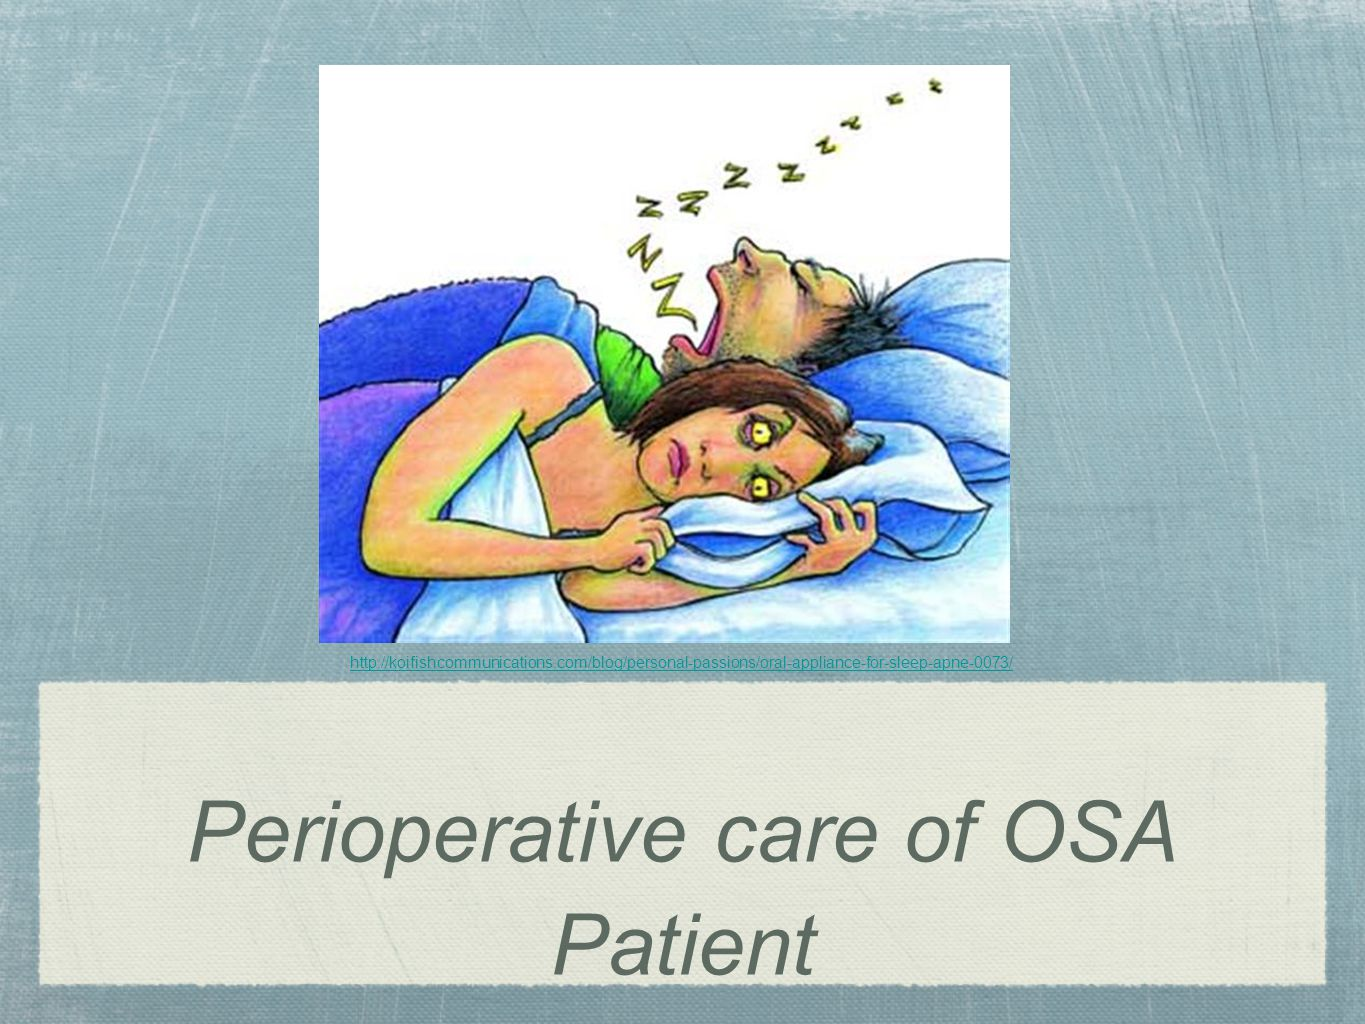 Perioperative care of OSA Patient http://koifishcommunications.com/blog/personal-passions/oral-appliance-for-sleep-apne-0073/